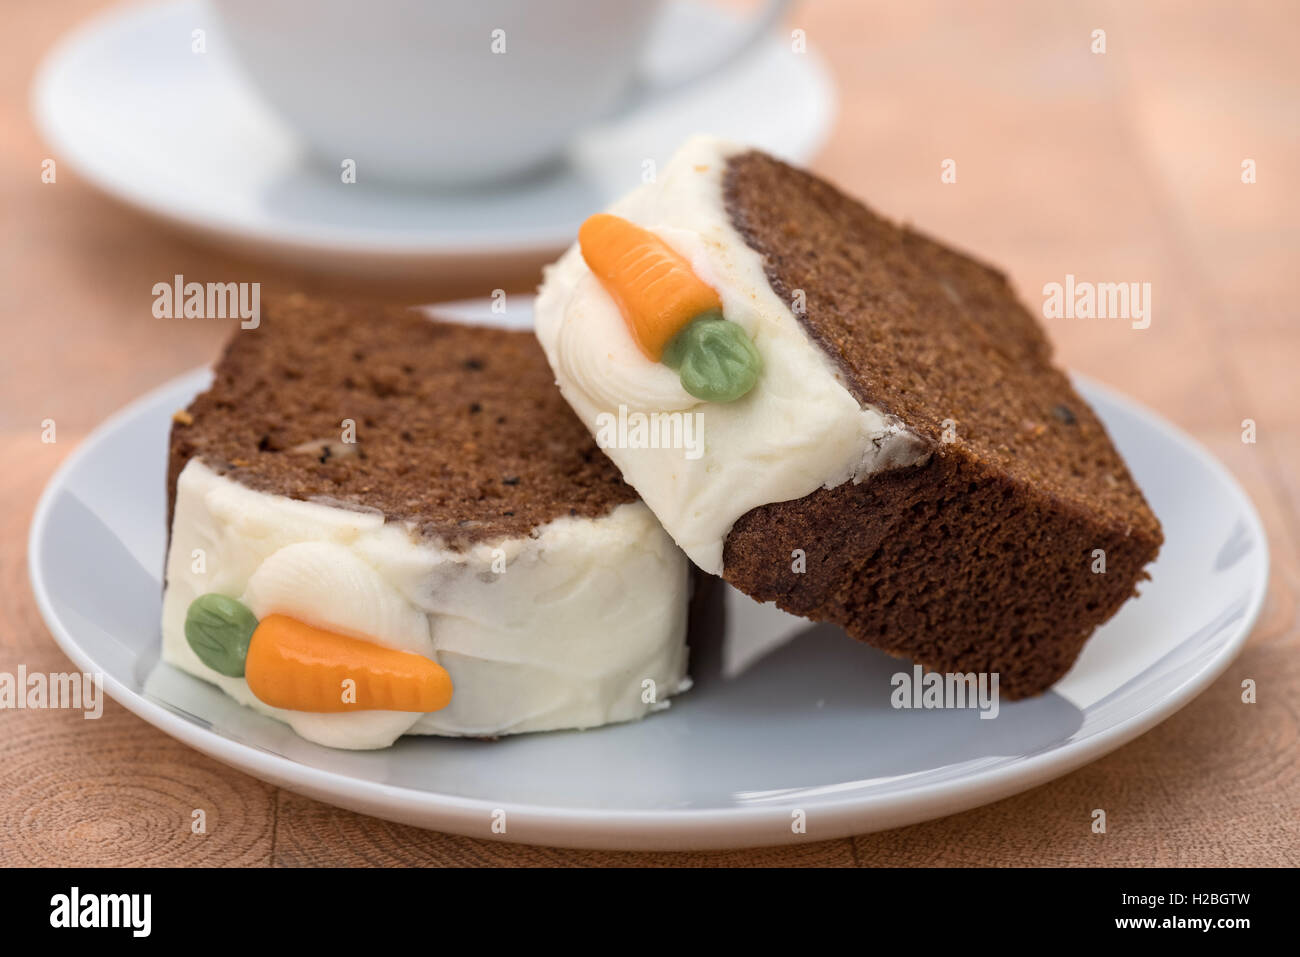 Slices of fresh carrot cake - shallow depth of field - Stock Image